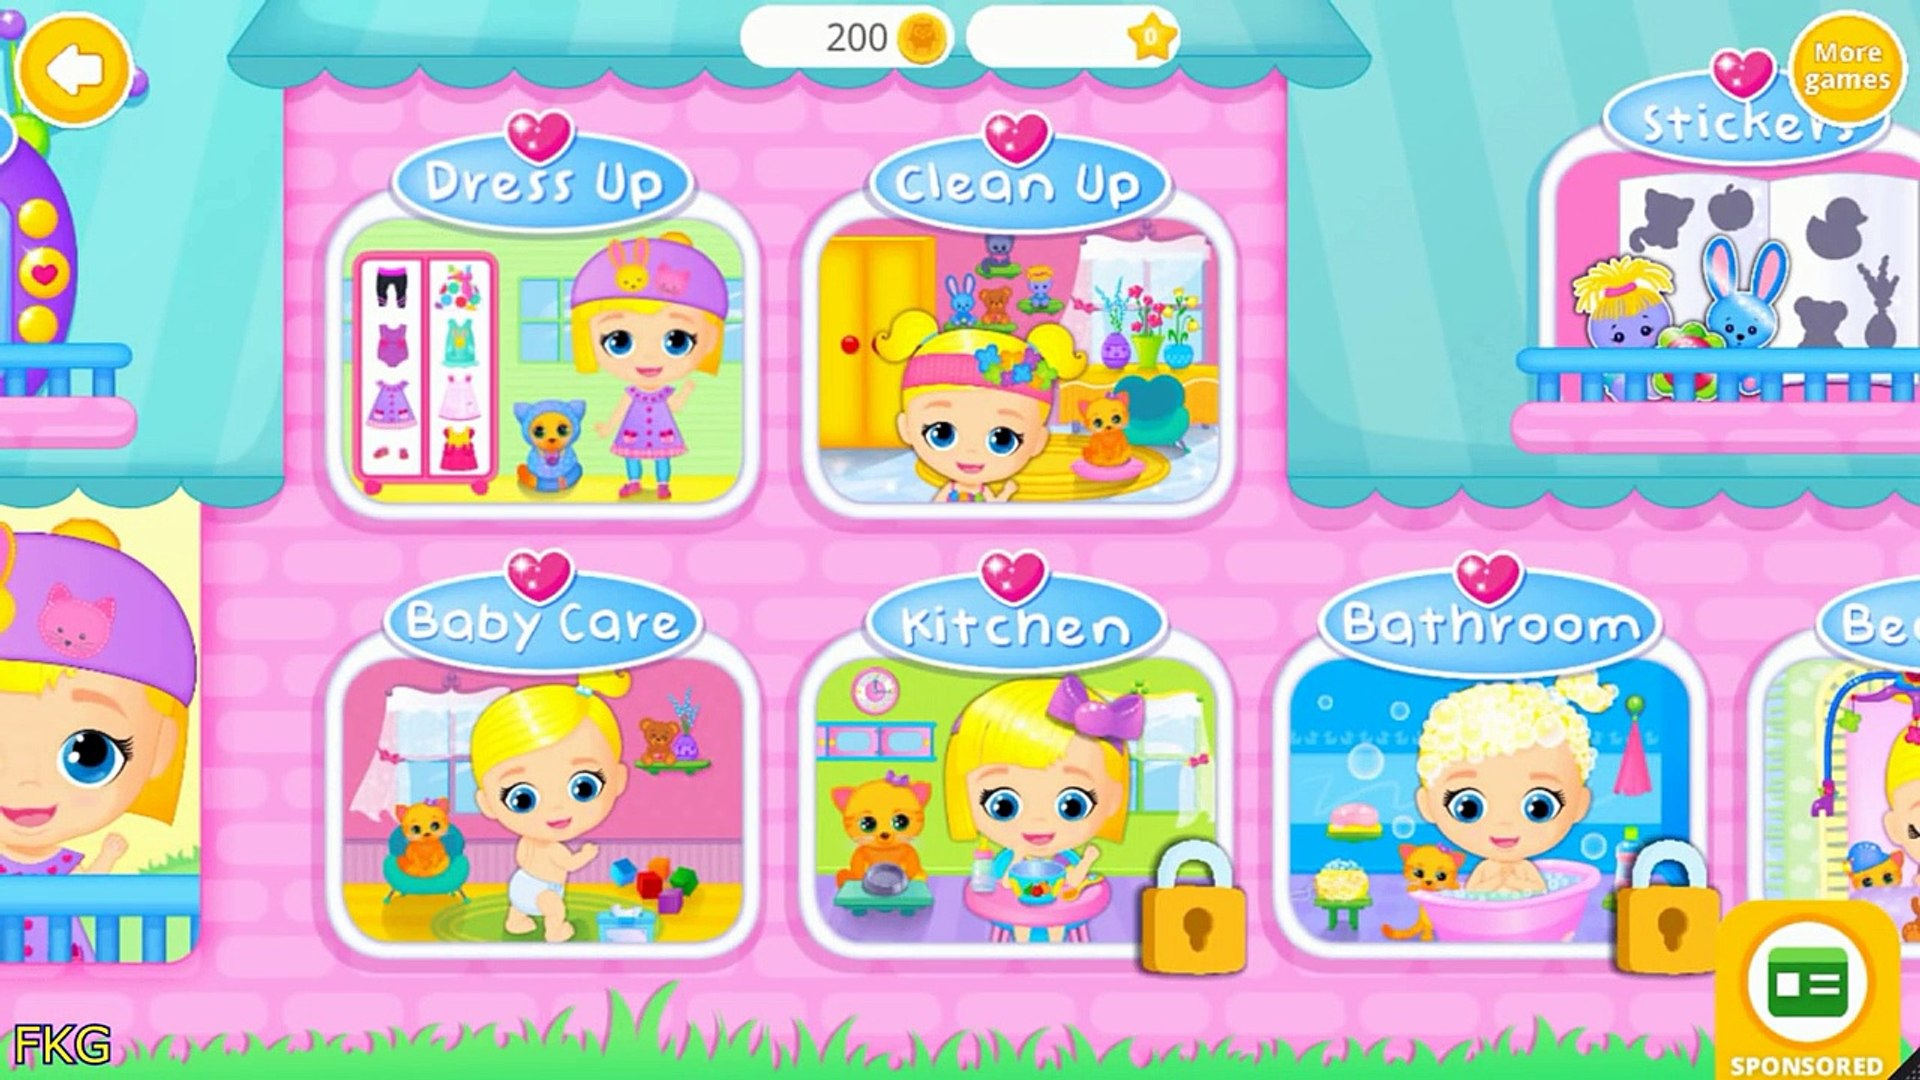 Baby Doll House Lily & Kitty Cute Baby And Pet Care Games For Kids And Toddlers